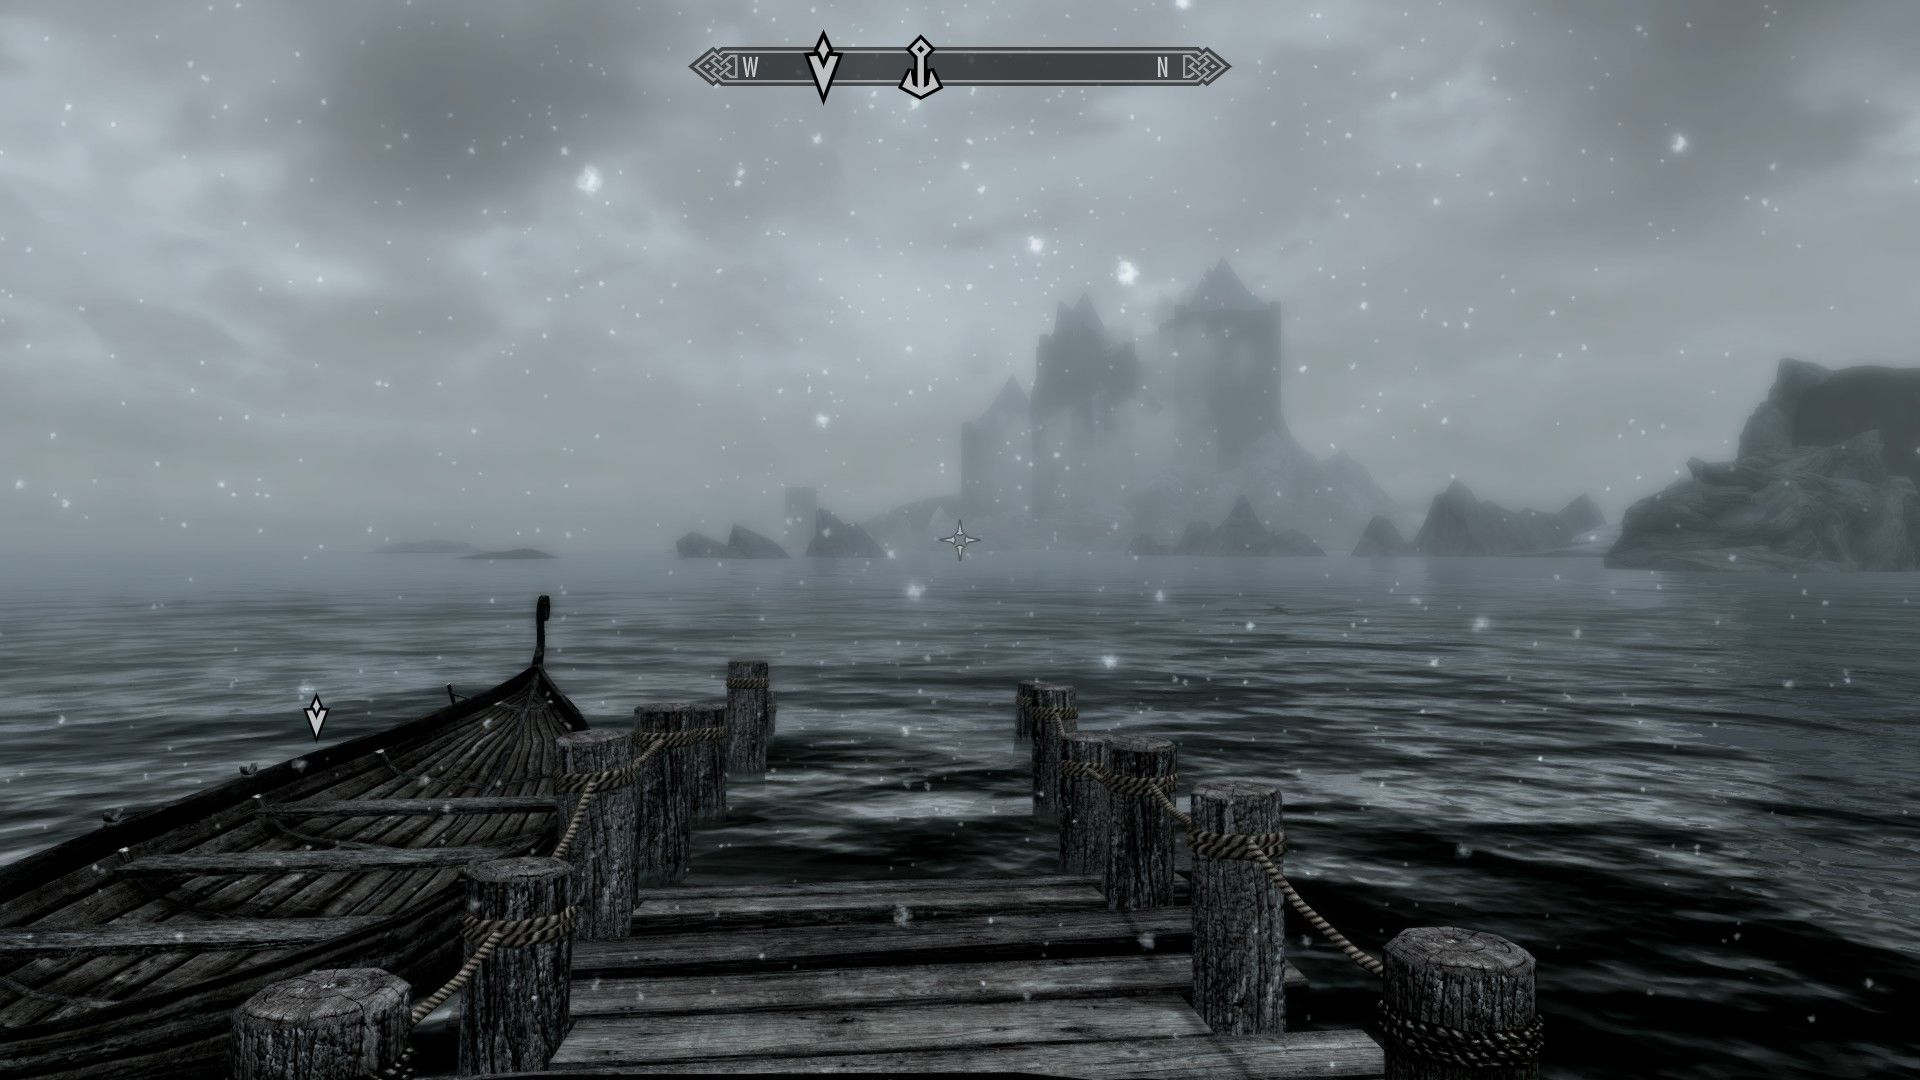 The Elder Scrolls V: Skyrim - Dawnguard Windows Castle Volkihar looms in the distant fog. Our path lies there.